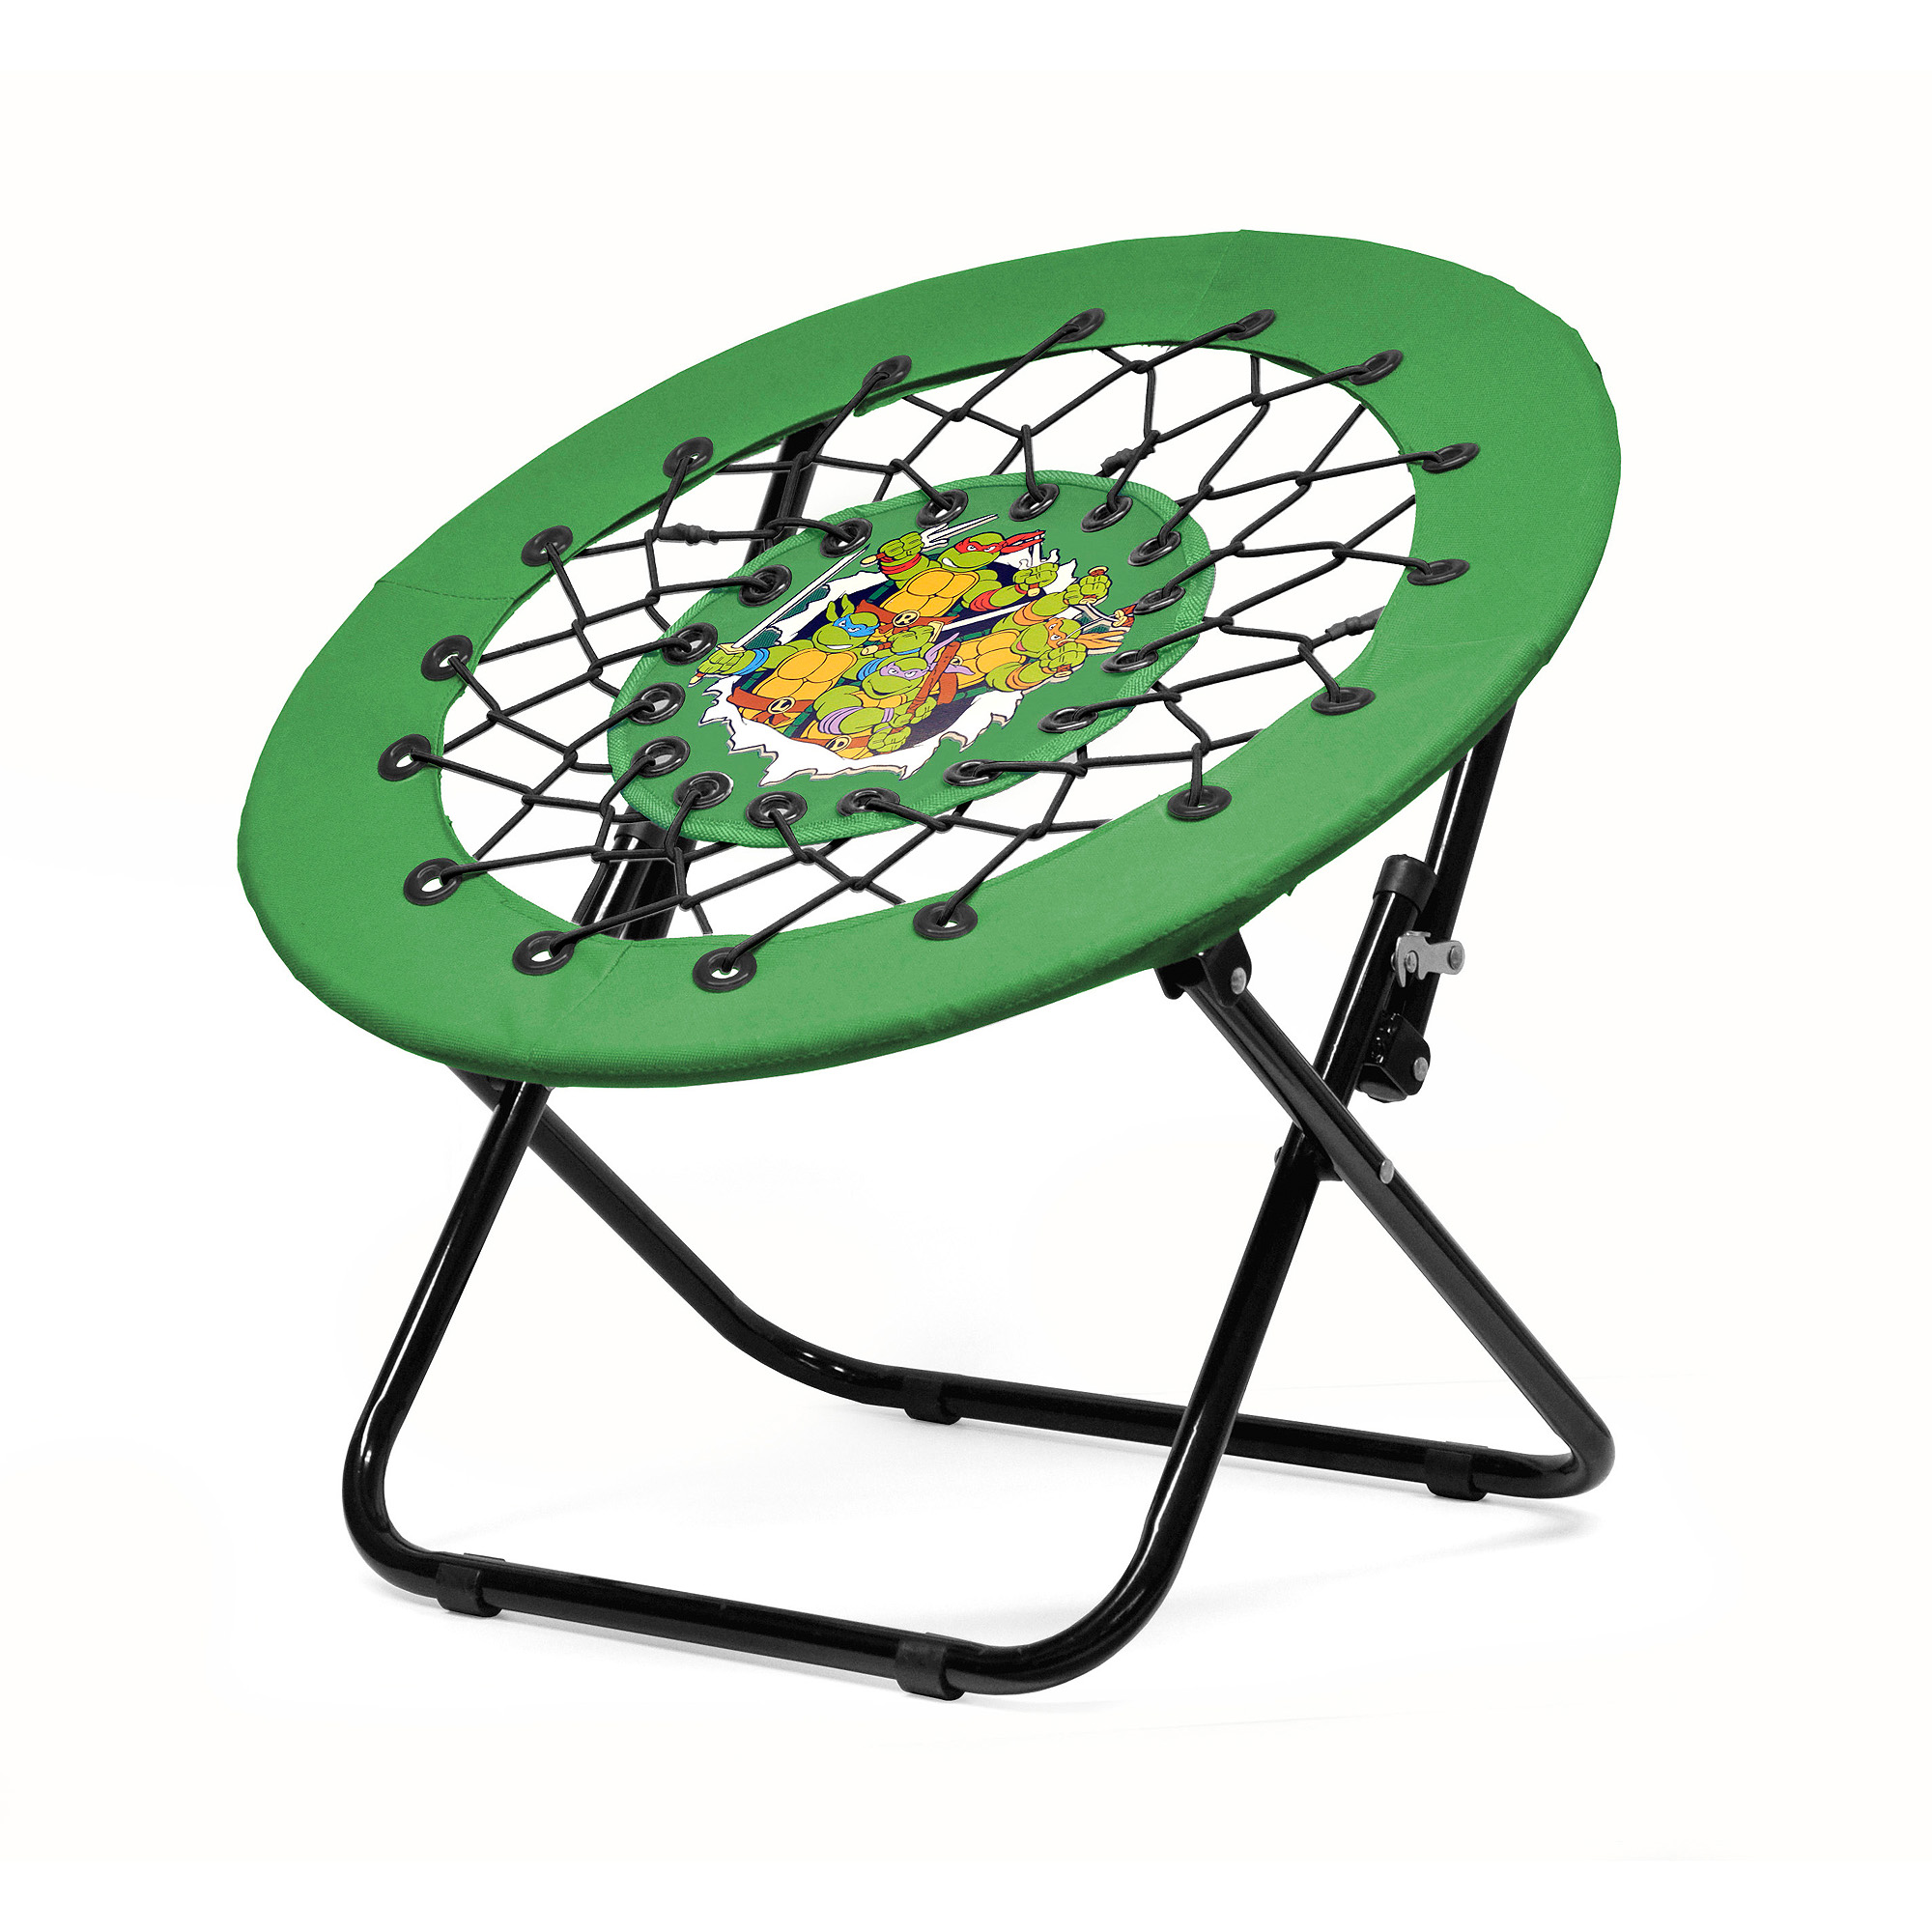 Delicieux Nickelodeon Teenage Mutant Ninja Turtles Flex Chair   Walmart.com